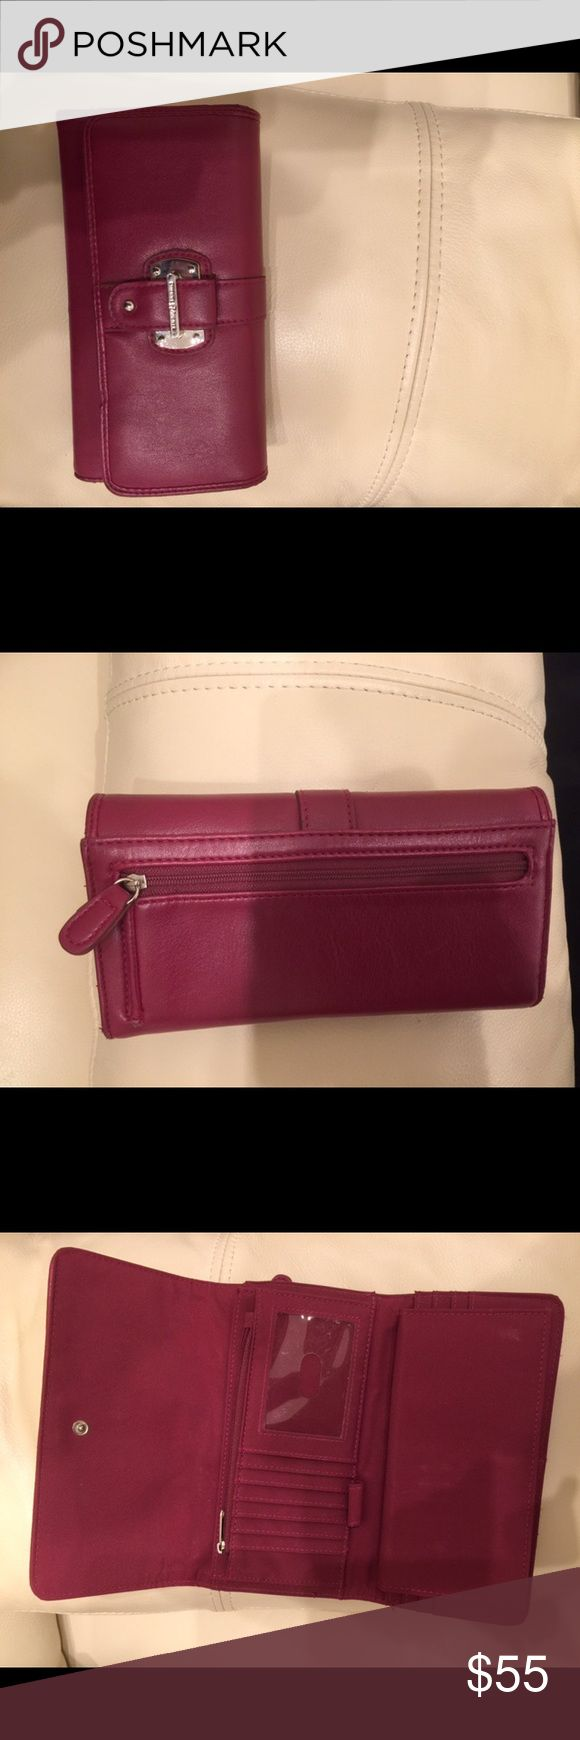 Etienne Aigner wallet Etienne Aigner wallet genuine leather burgundy color great condition Etienne Aigner Bags Wallets